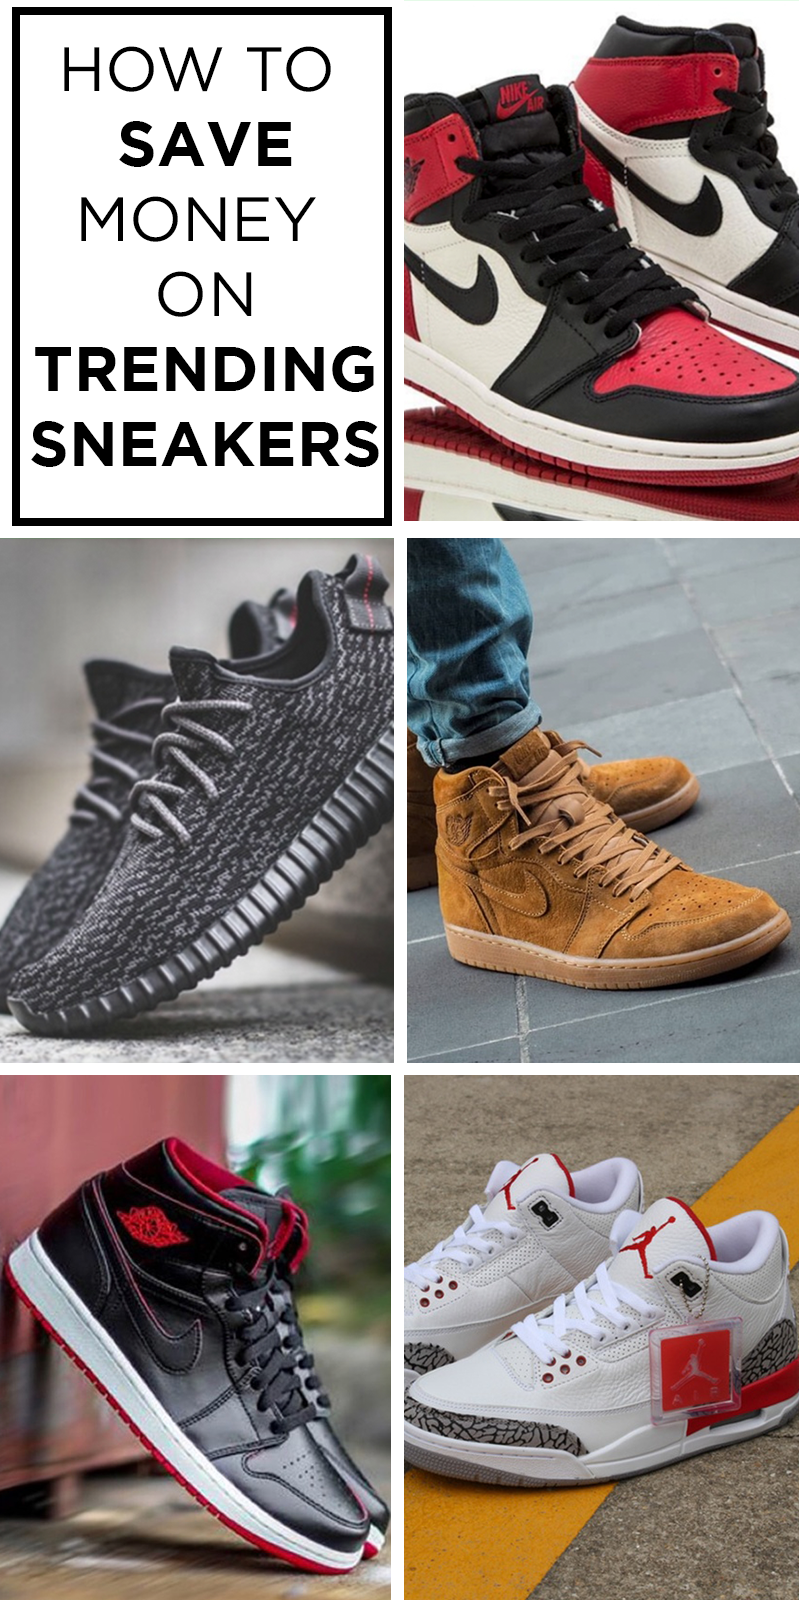 33a433d9f Don t overpay for sneakers. Find up to 50% off of Air Jordan